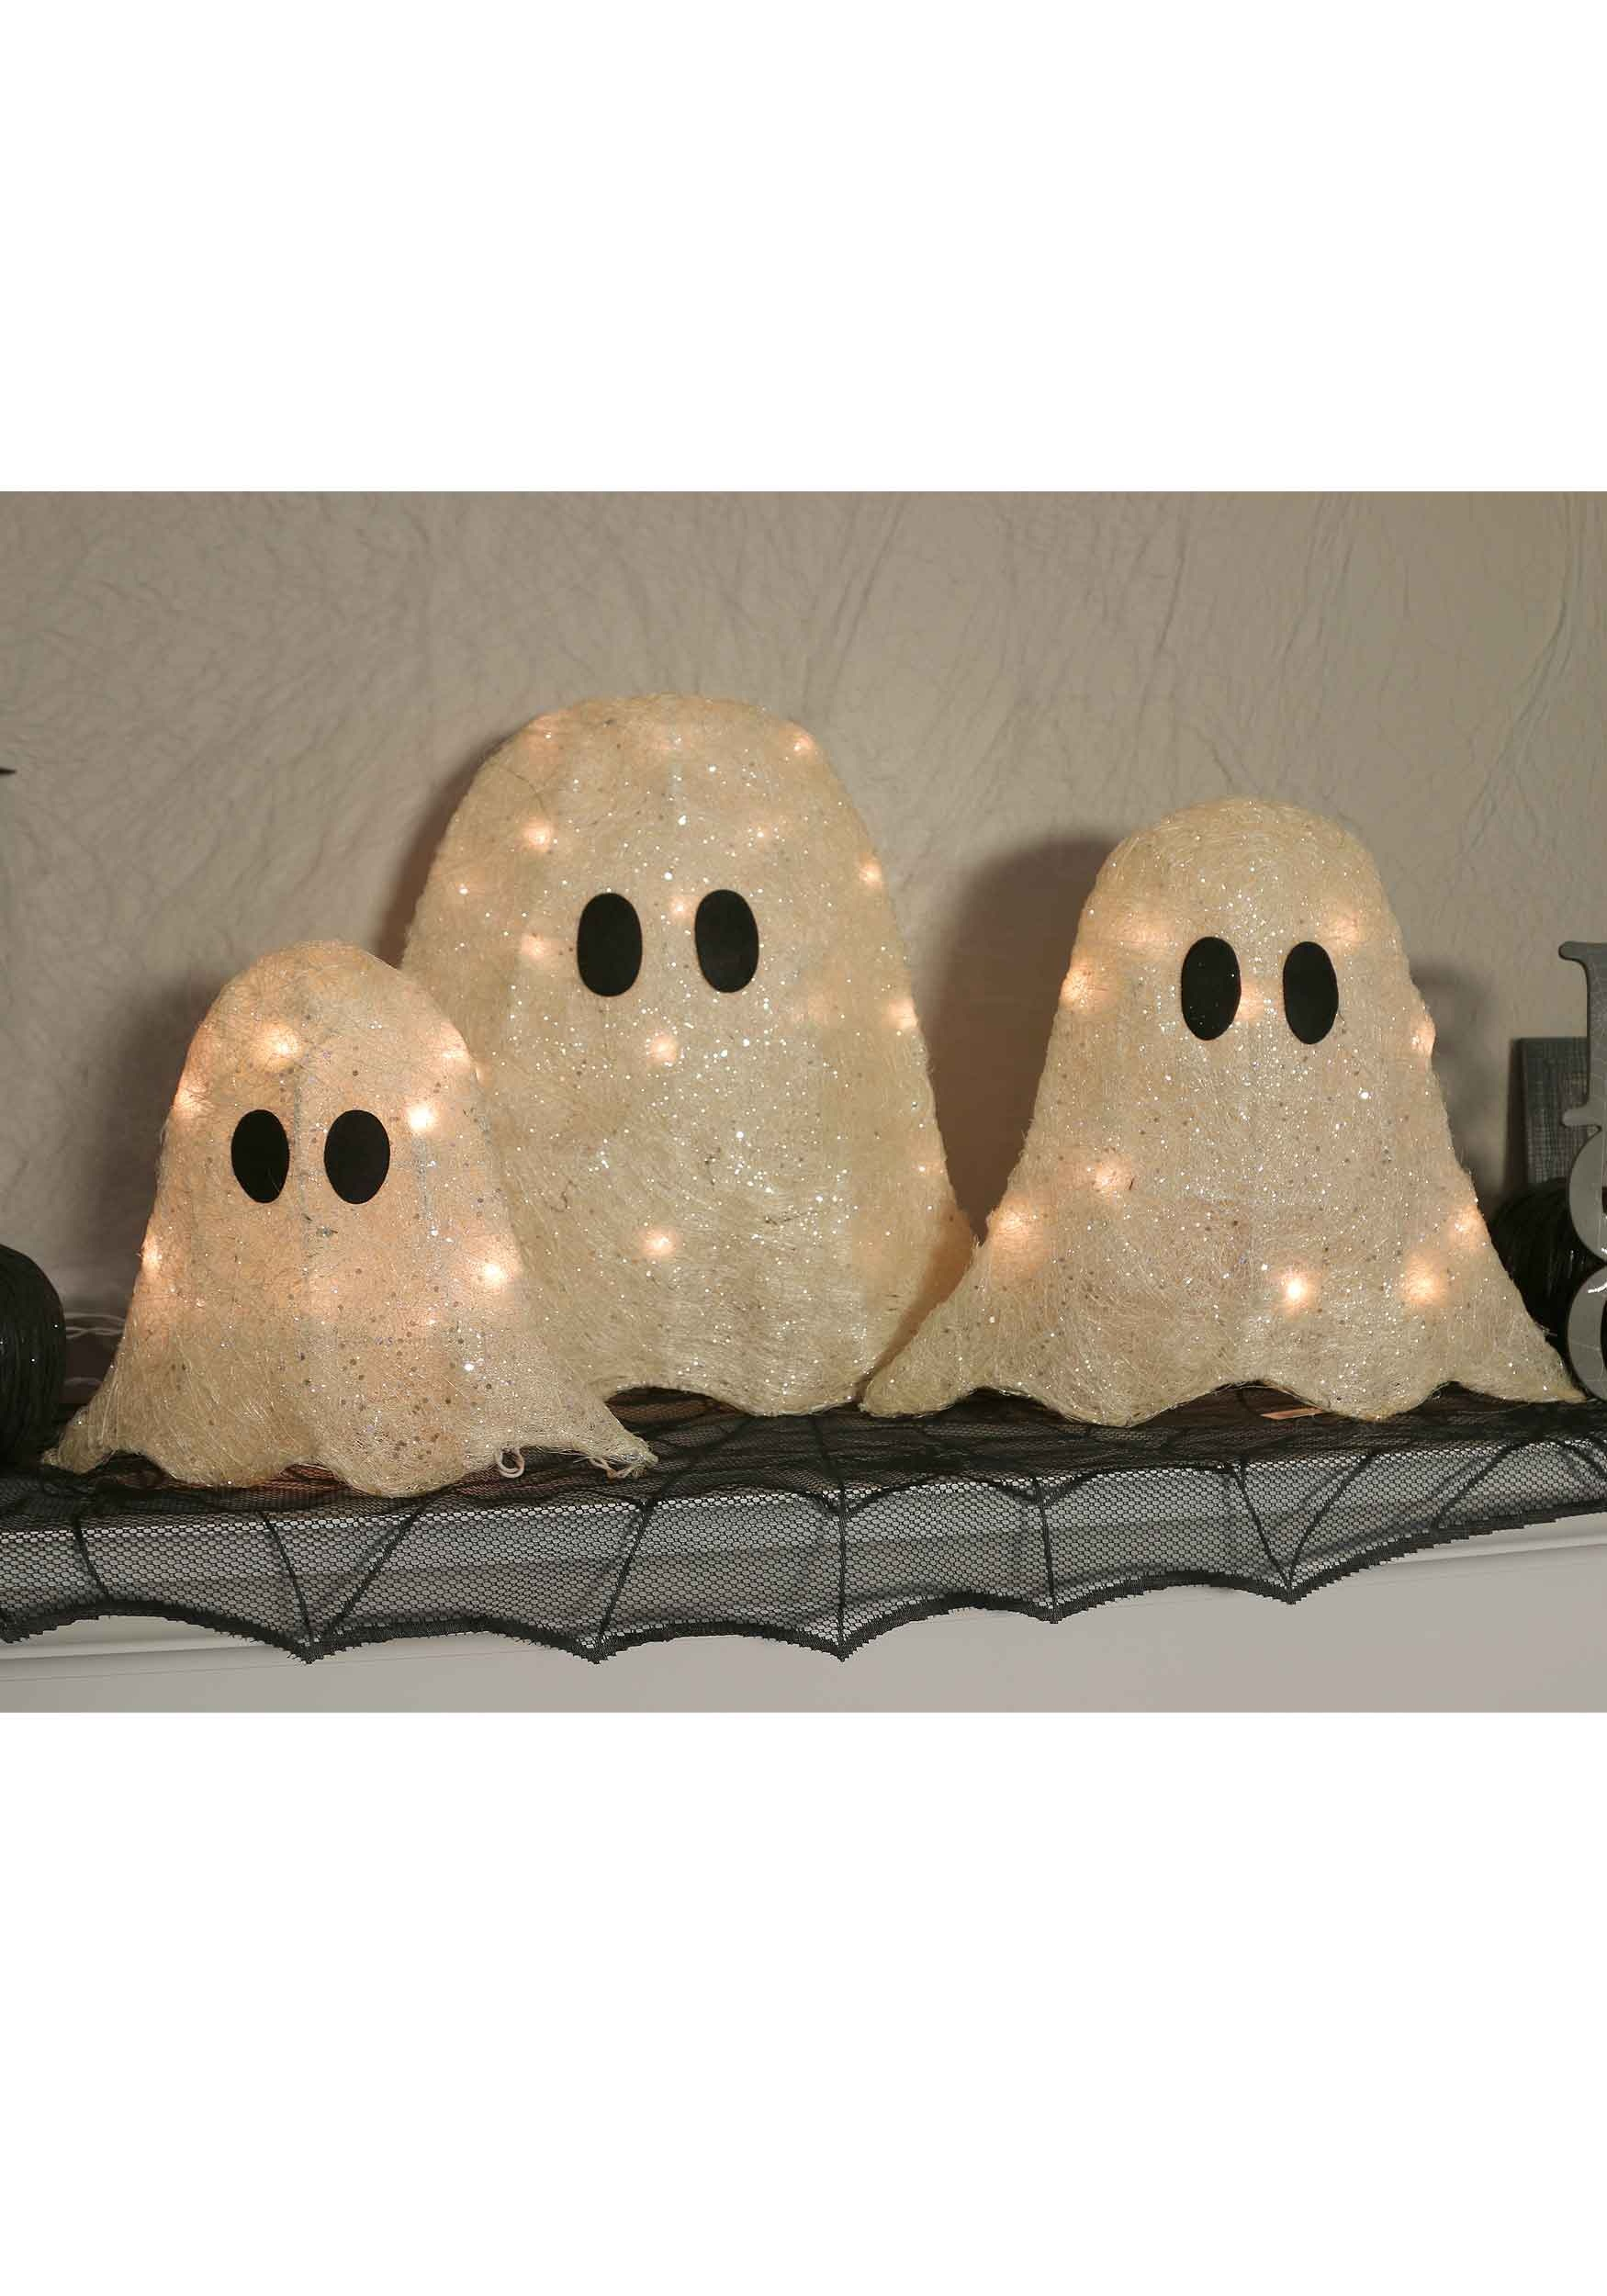 "12/16/19"" Set of Three LED Ghosts"